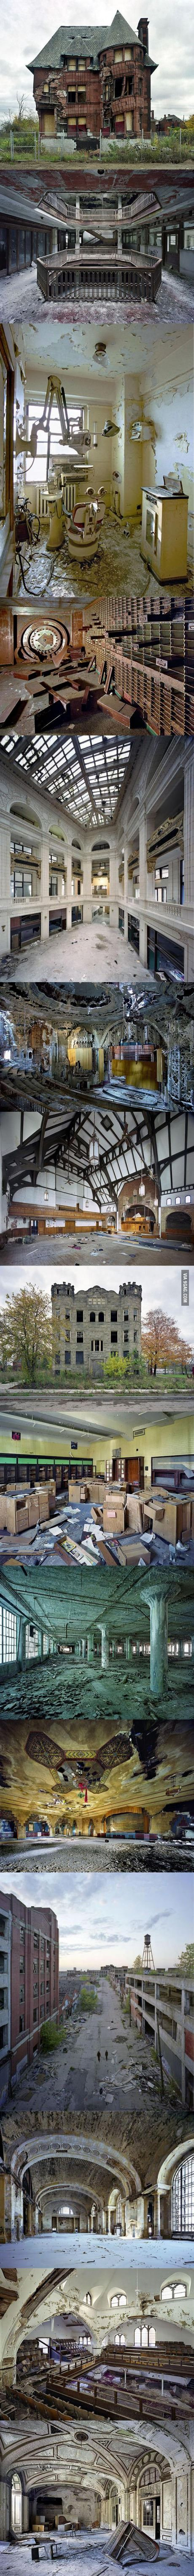 *m. Detroit is the world's biggest ghost city. I wouldn't want to live in Detroit per say, but I love the idea of taking an abandoned house and remodeling it to be inhabited again. I love the stone one 8 pictures down.